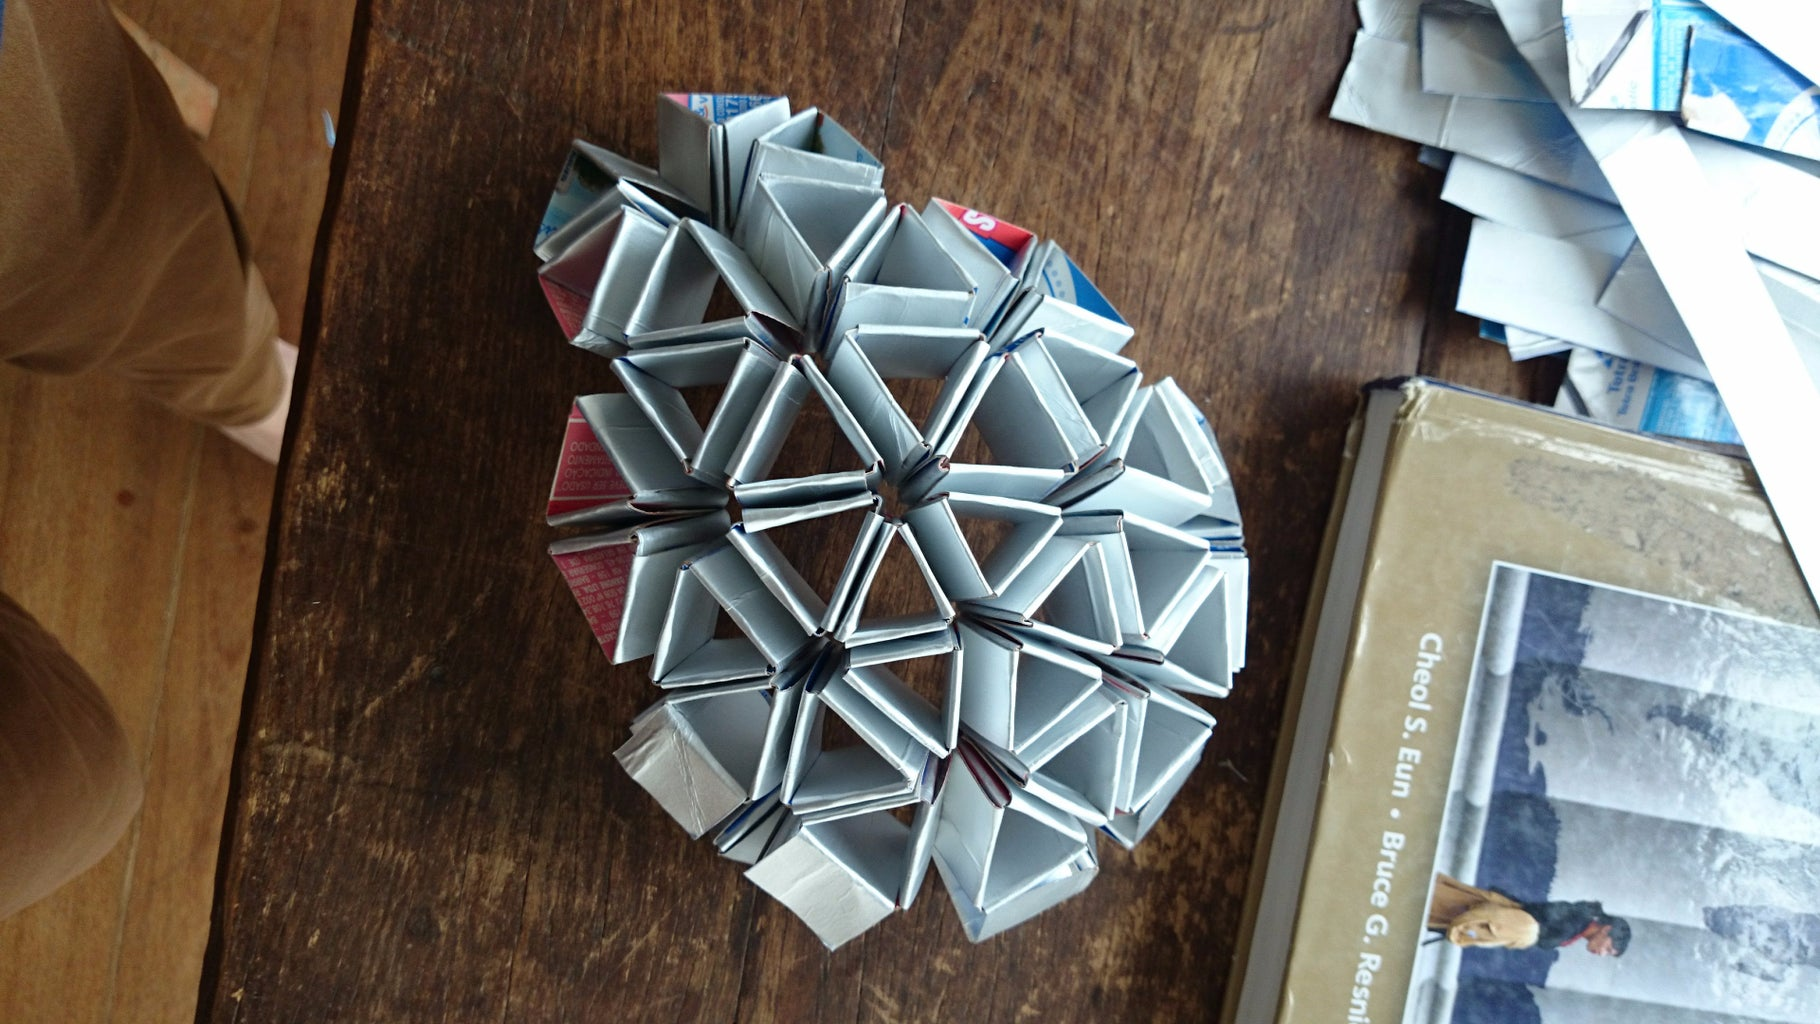 Assemble Hexagons and Pentagons